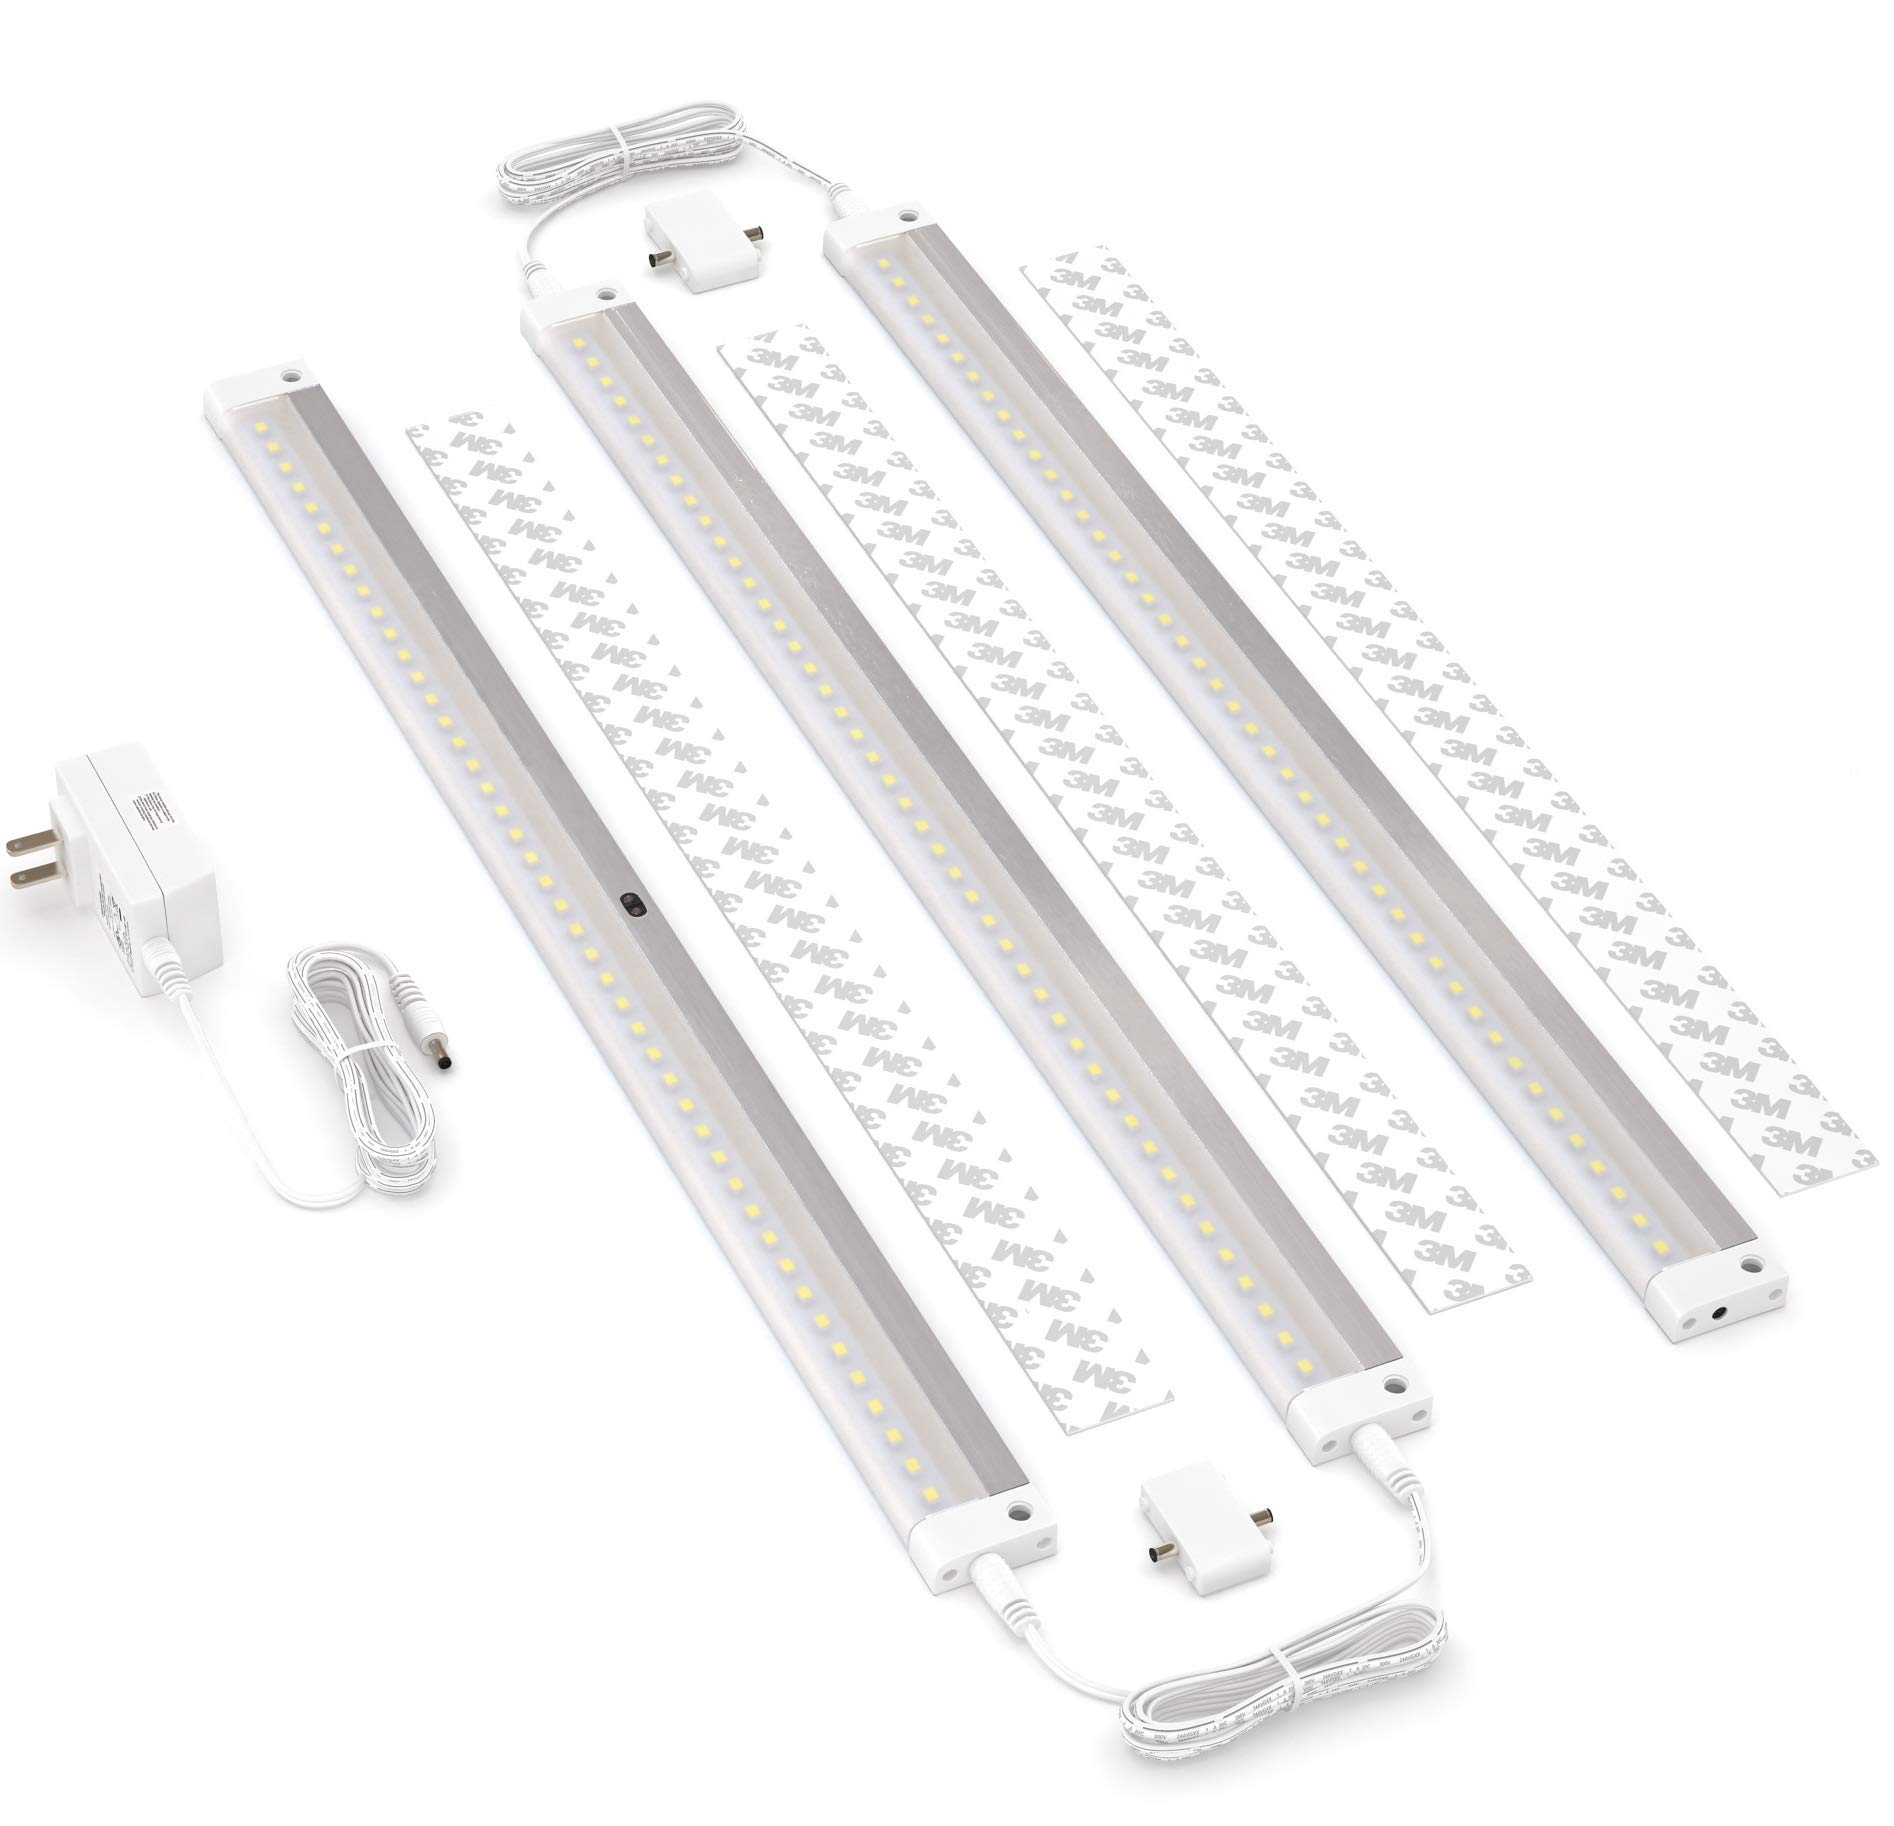 EShine White Finish 3 Extra Long 20 inch Panels LED Dimmable Under Cabinet Lighting Kit, Hand Wave Activated - Touchless Dimming Control, Warm White by EShine